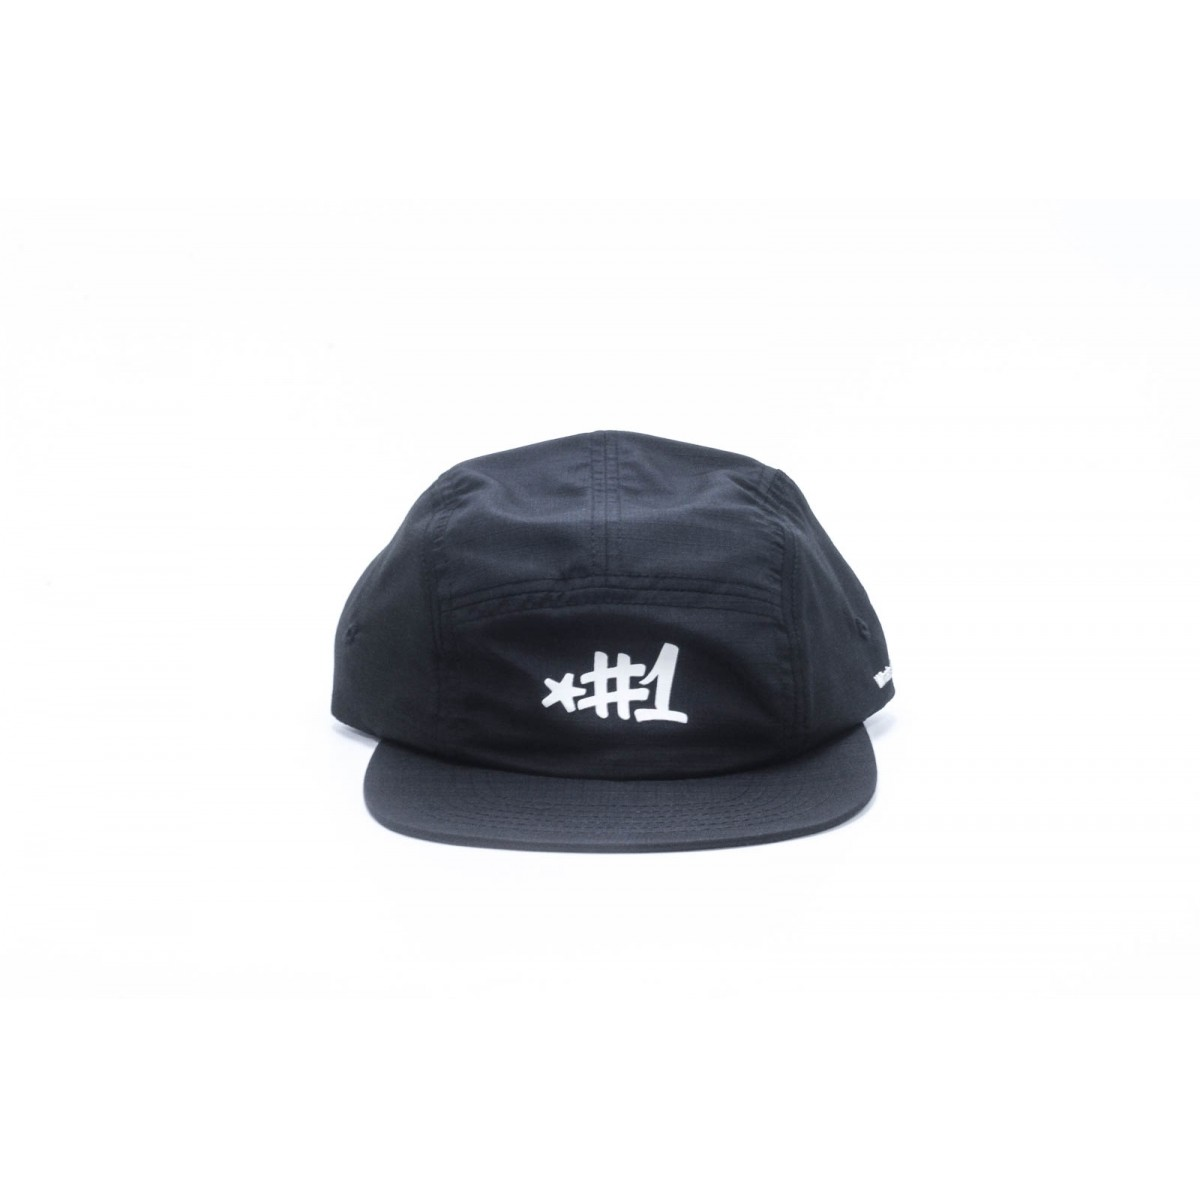 5Panel First #1 Whats Your Dream?